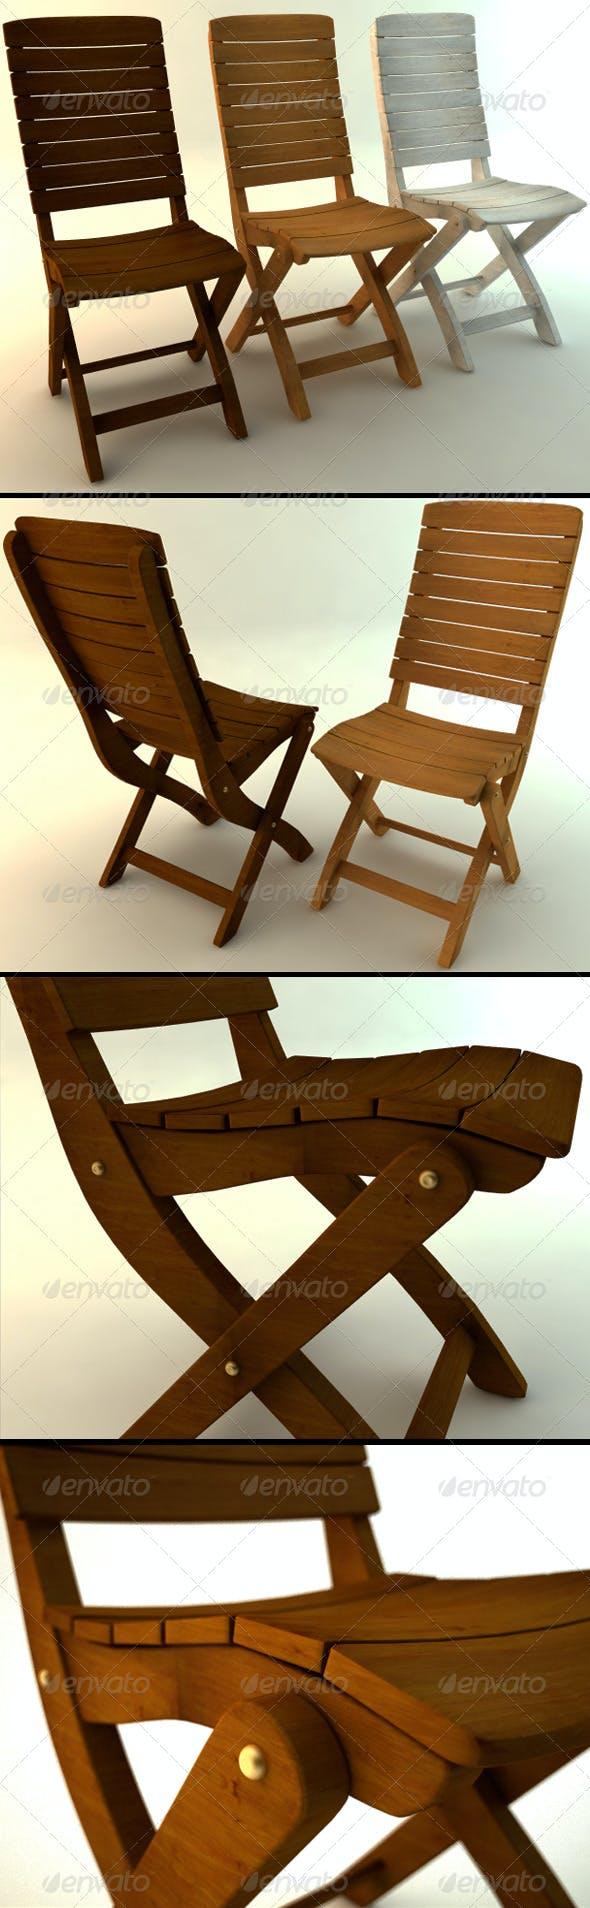 Wooden Chair in Three Colors - 3DOcean Item for Sale